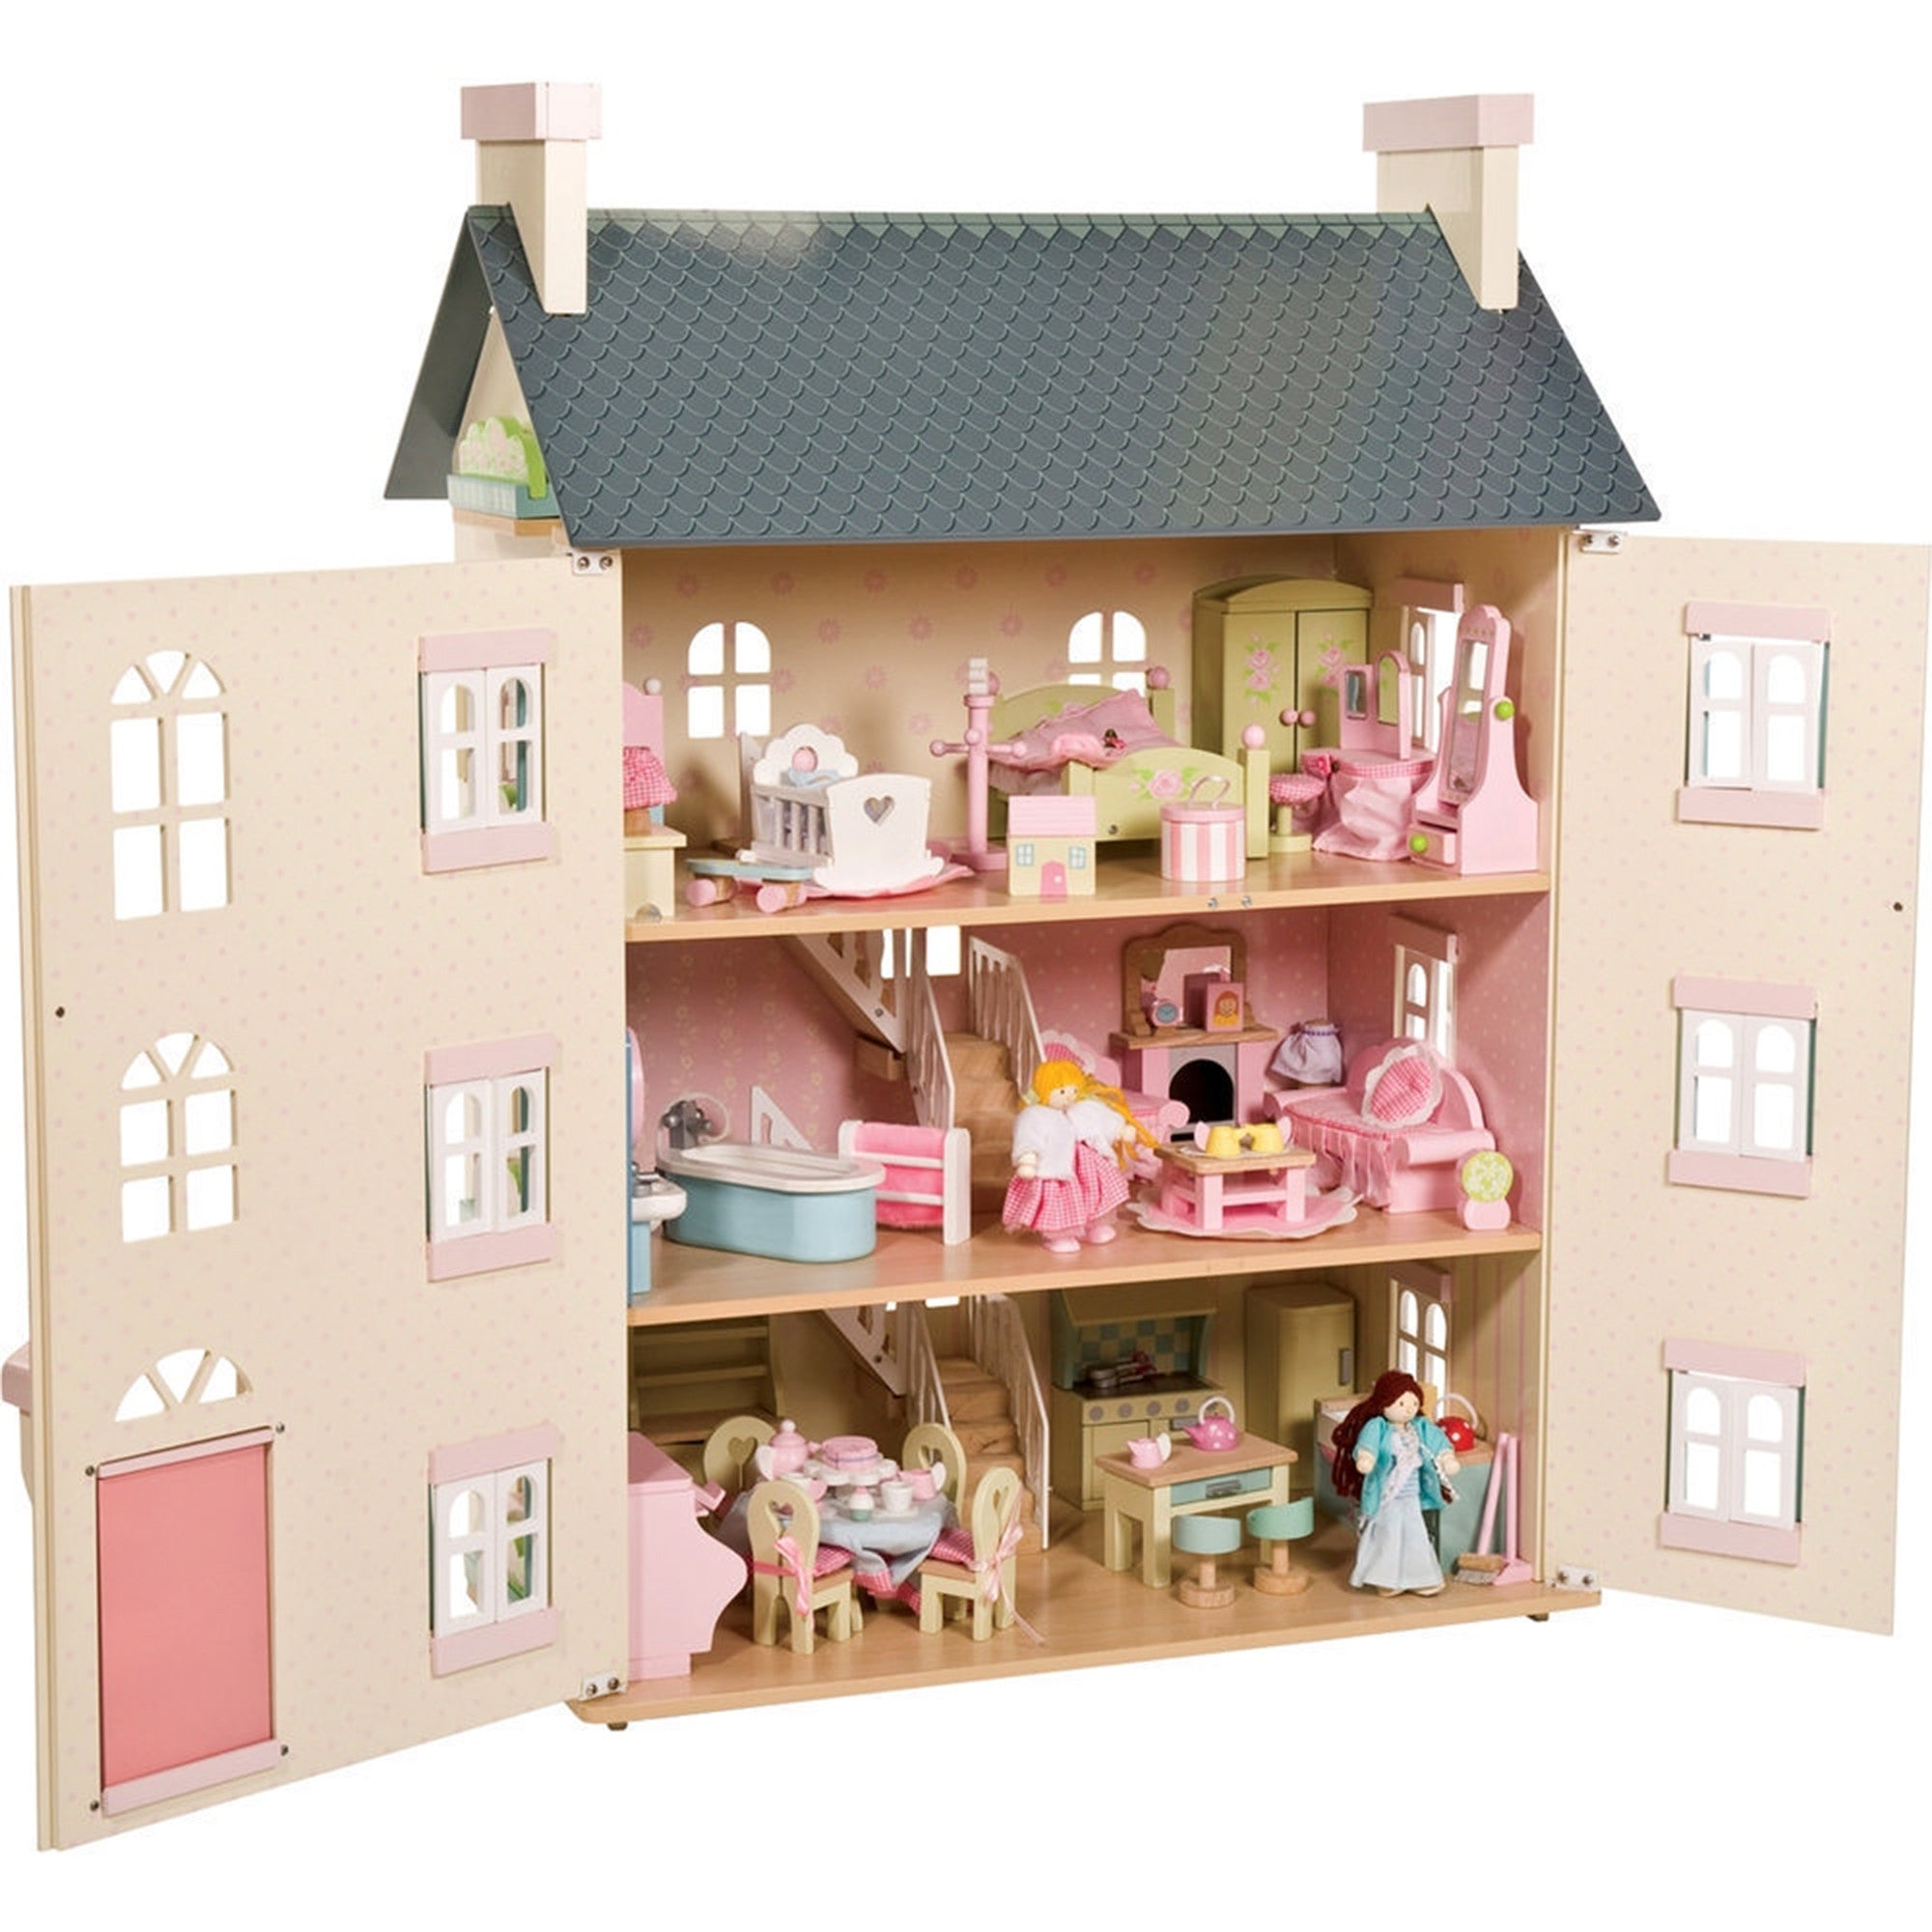 Captivating ... Le Toy Van Cherry Tree Hall Dollu0027s House   Le Toy Van   Little Earth  Nest ...